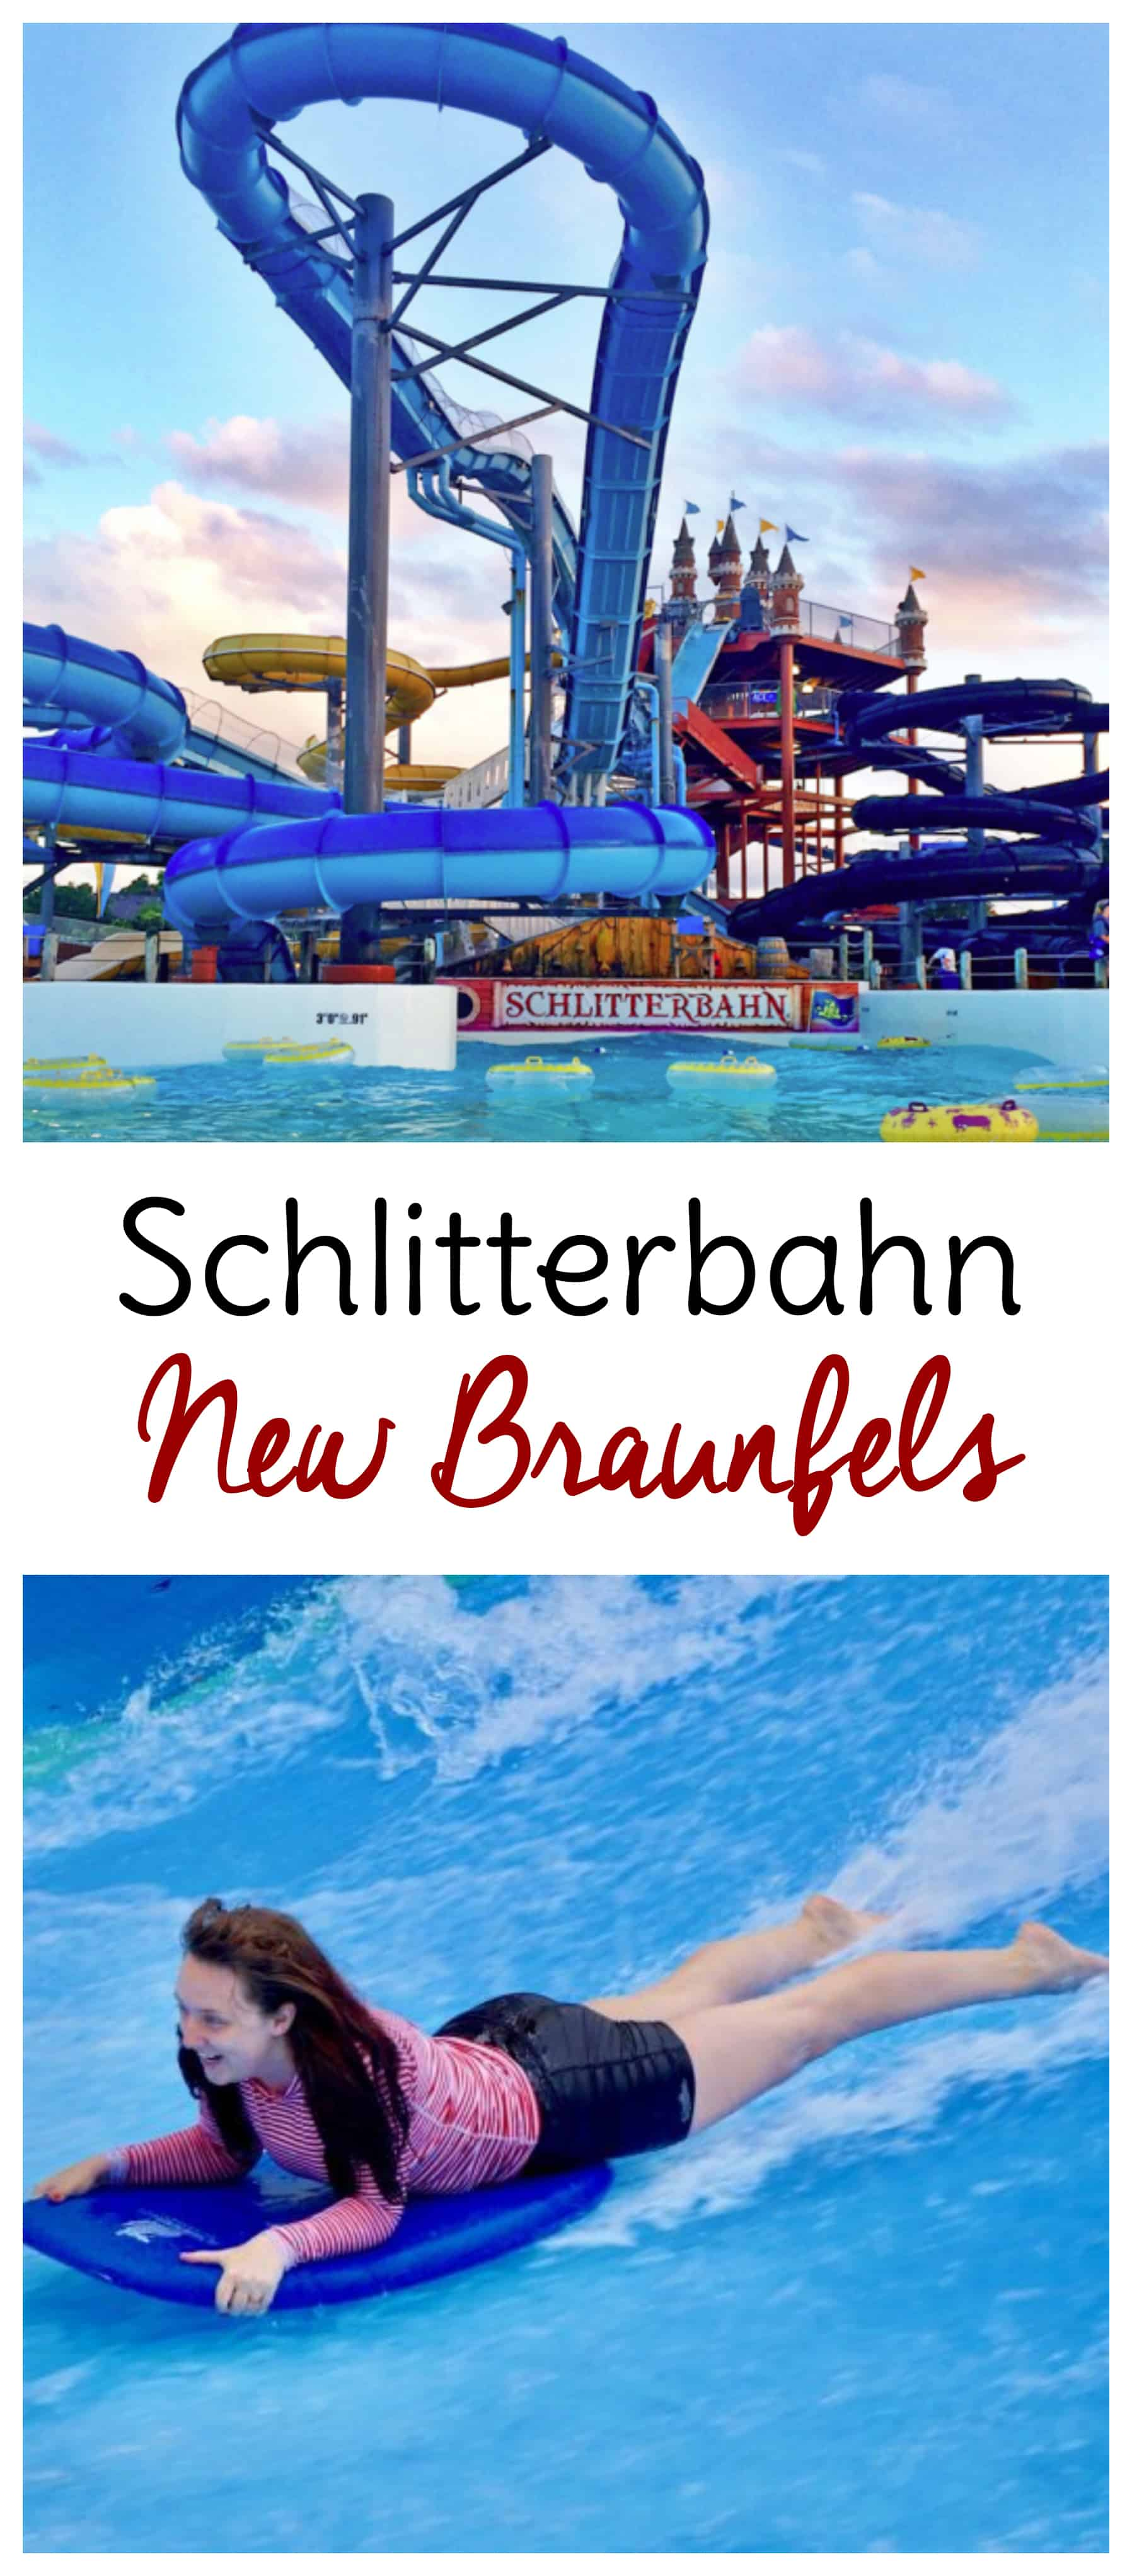 Schlitterbahn New Braunfels tips, tricks and walkthroughs! #BahnLove #familytravel